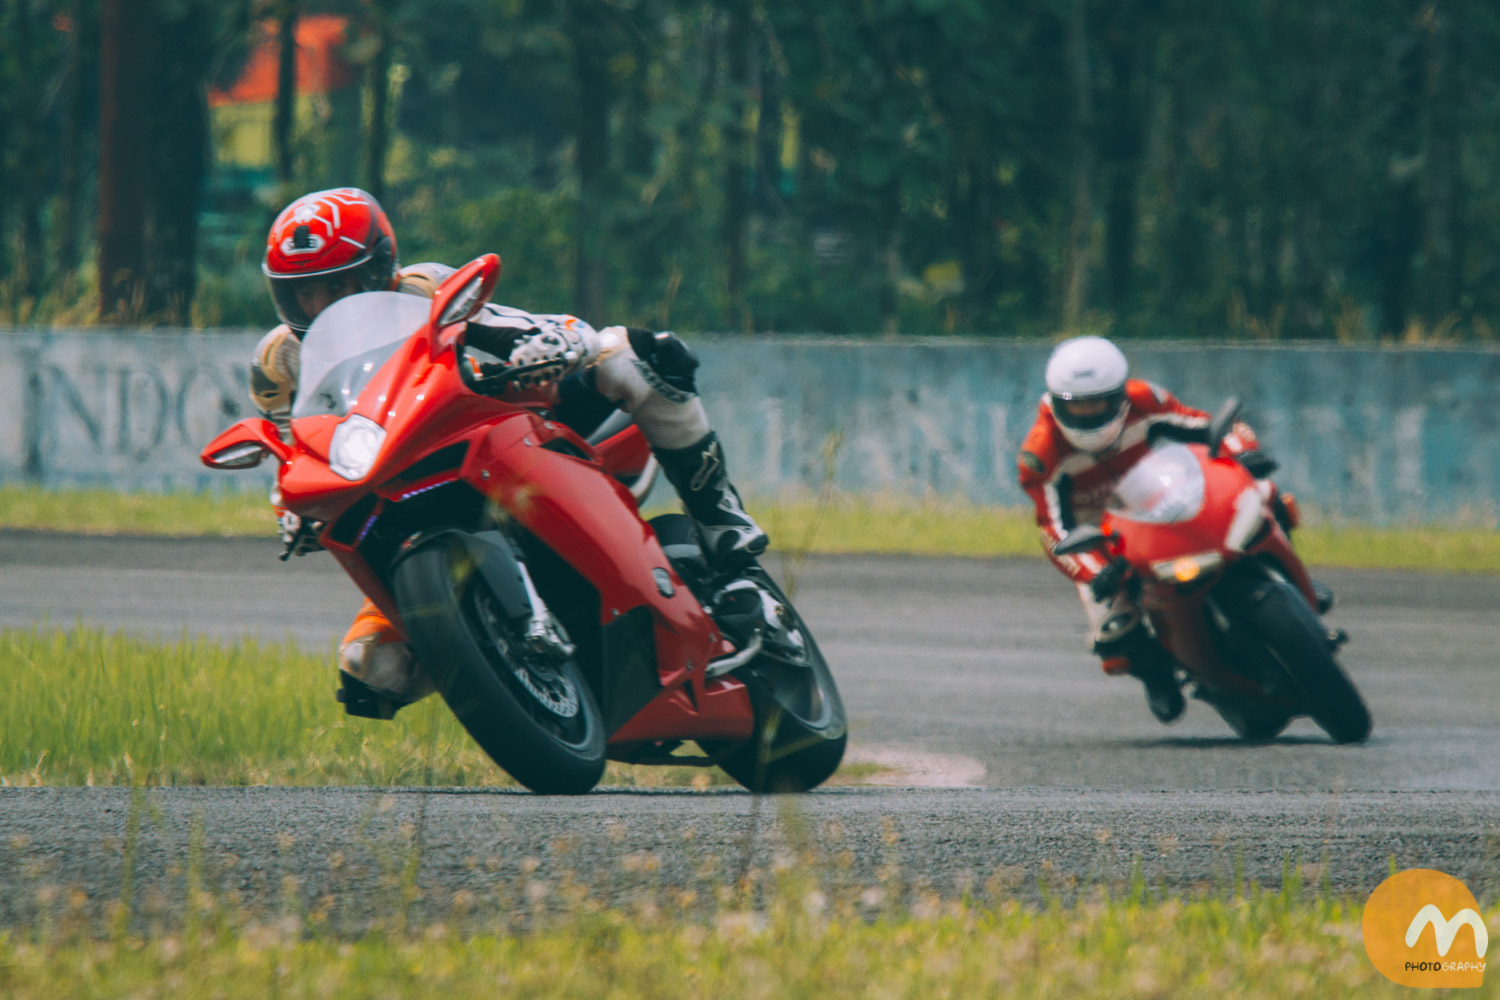 Trackday MV Agusta Owner Club Indonesia